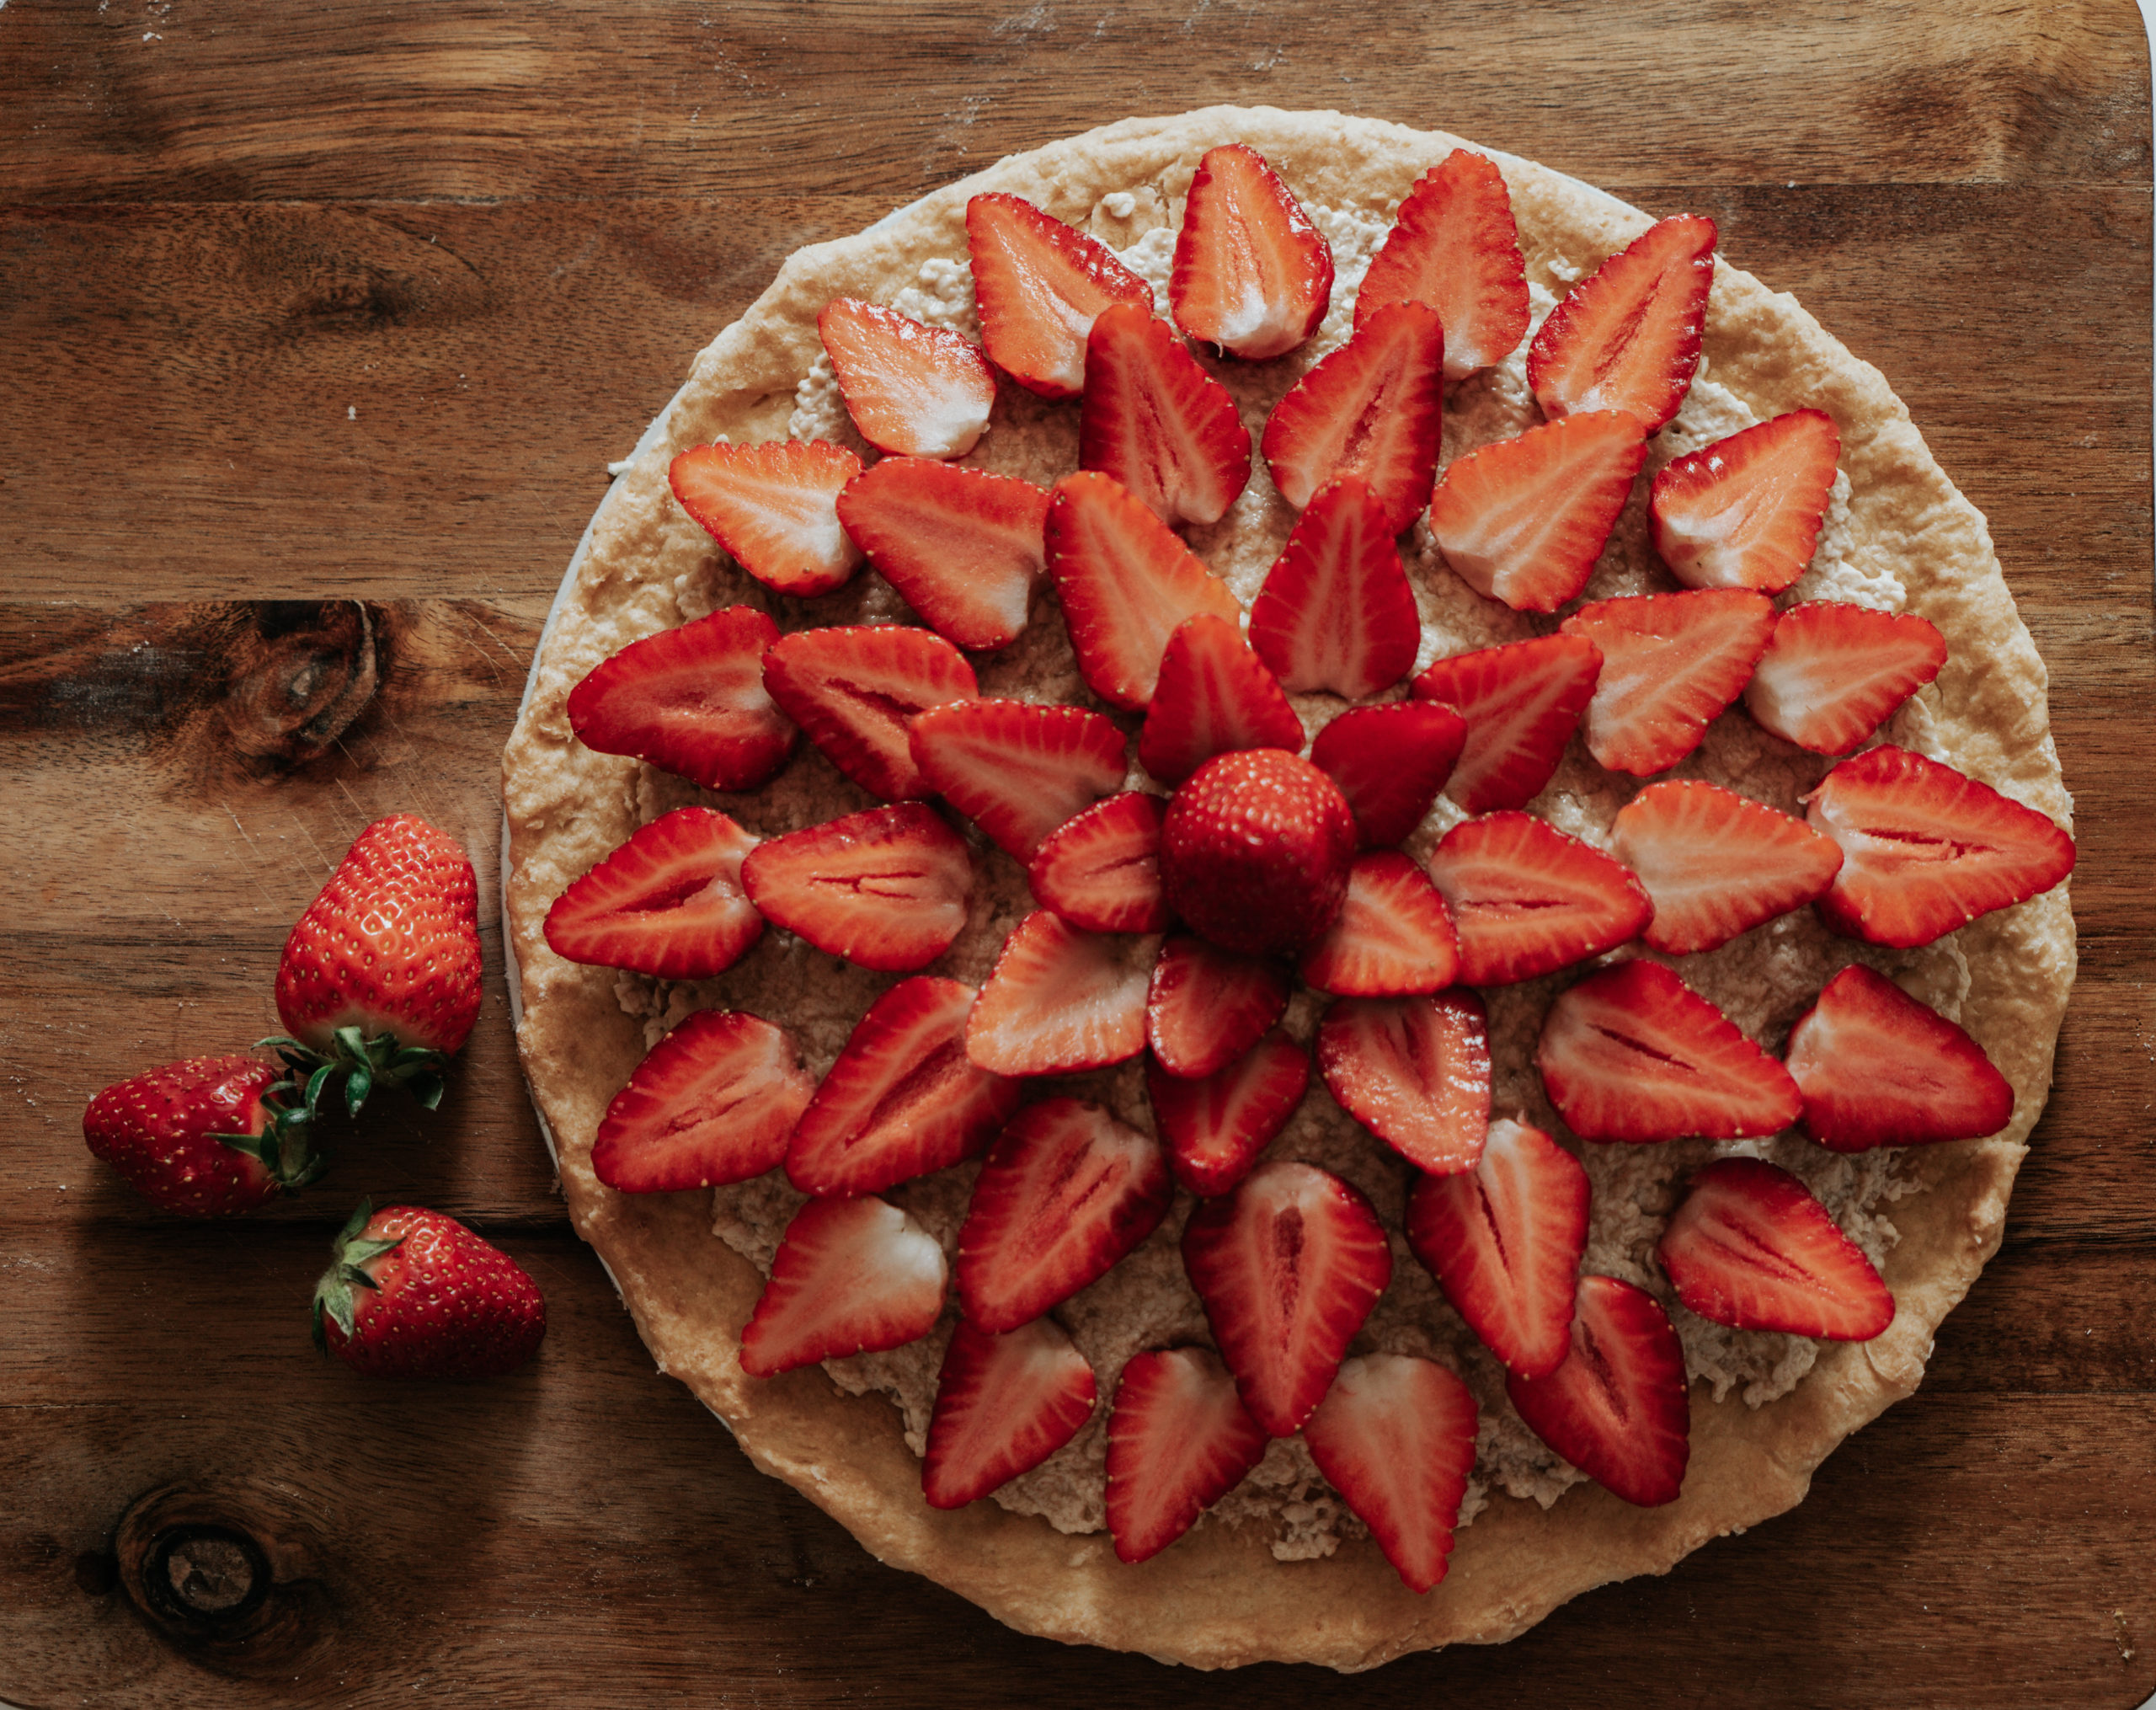 tarte aux fraises - strawberry pie - bodyandfly - food blogger